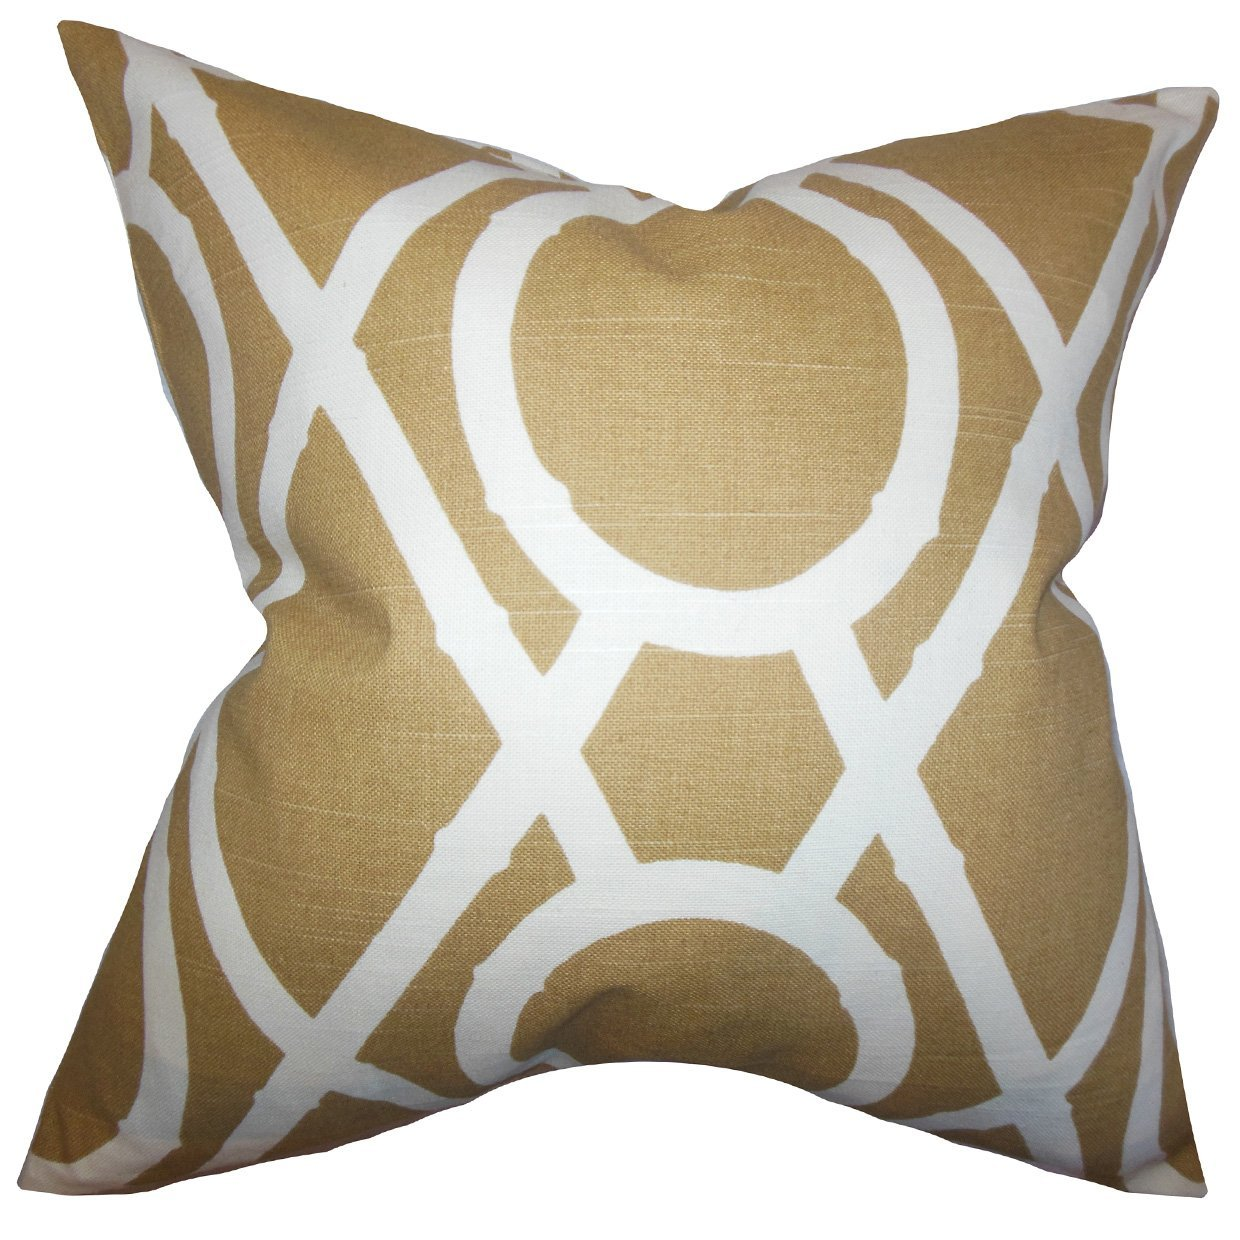 The Pillow Collection Whit Geometric Bedding Sham Amber King//20 x 36